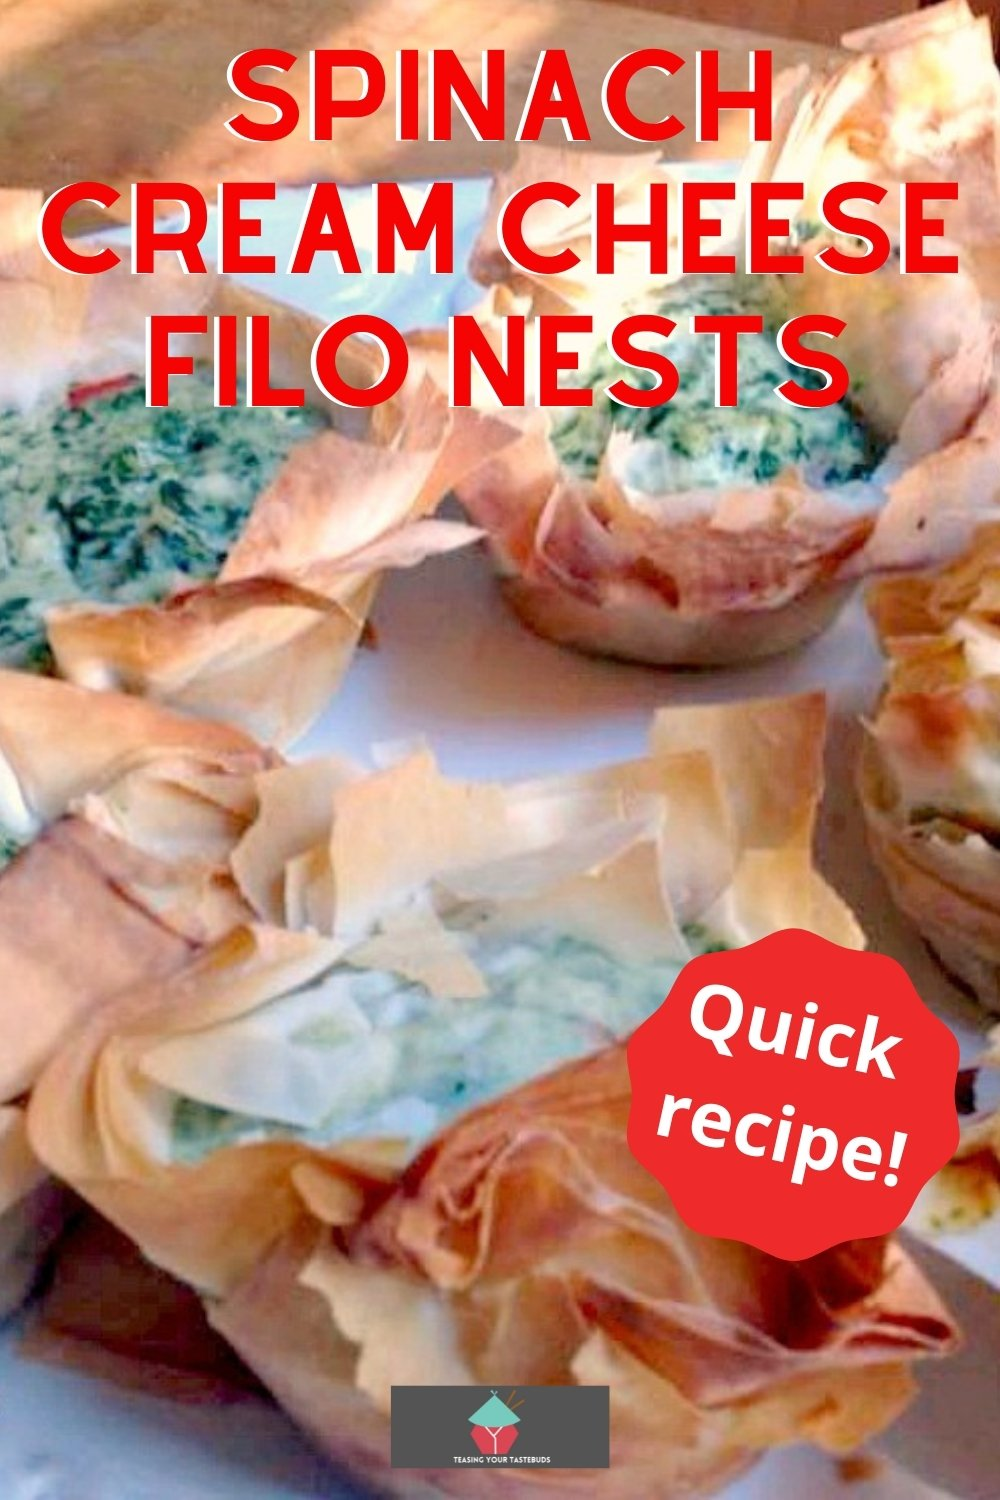 Spinach Cream Cheese Filo Nests. An incredibly flexible quick and easy recipe, great for brunches, parties lunch boxes. Options to add bacon, chicken for the meat lovers too!